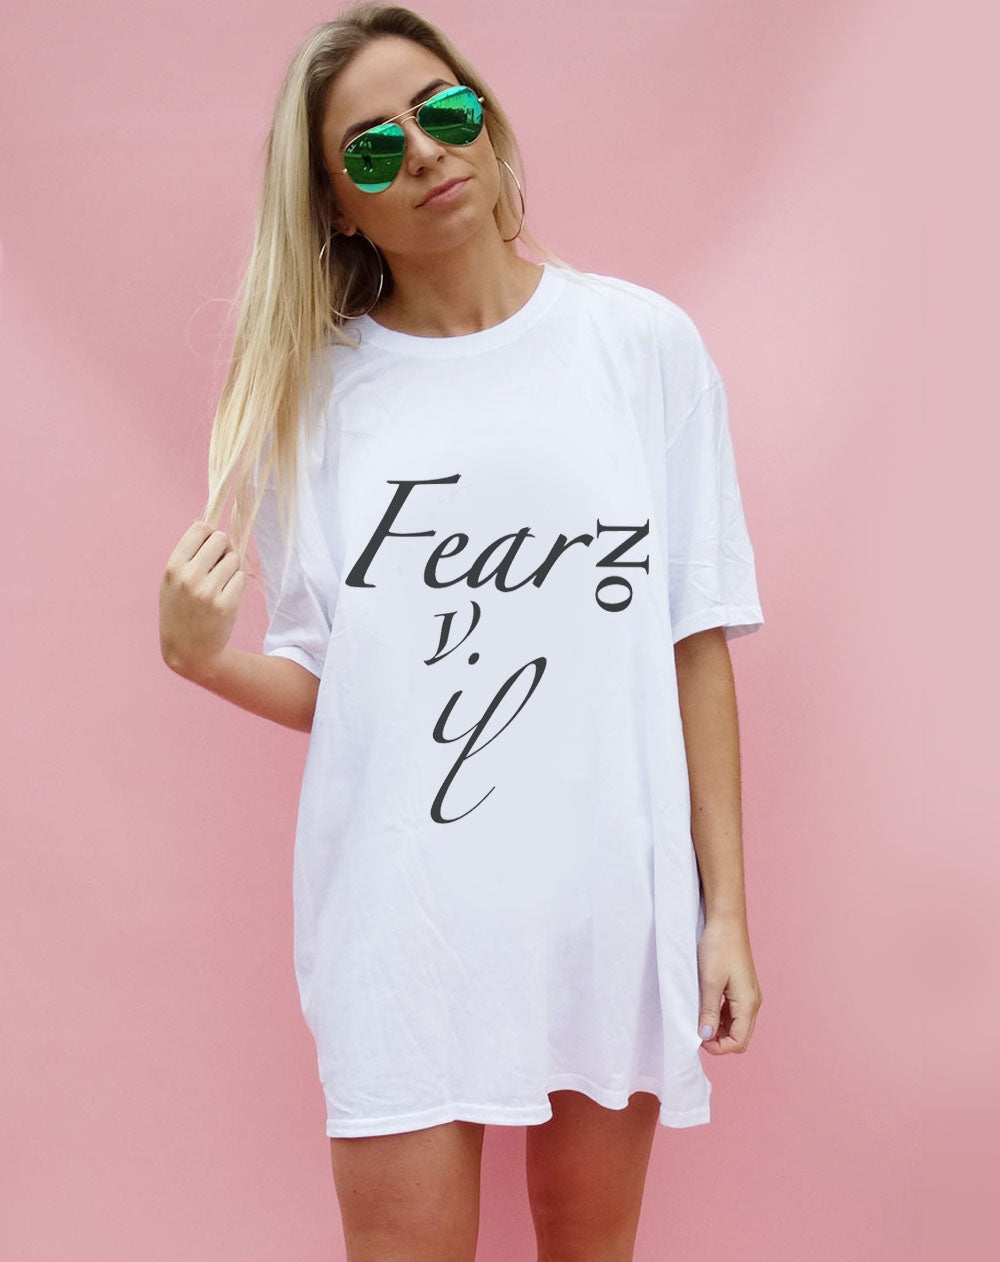 Fear No Evil Oversized T-shirt